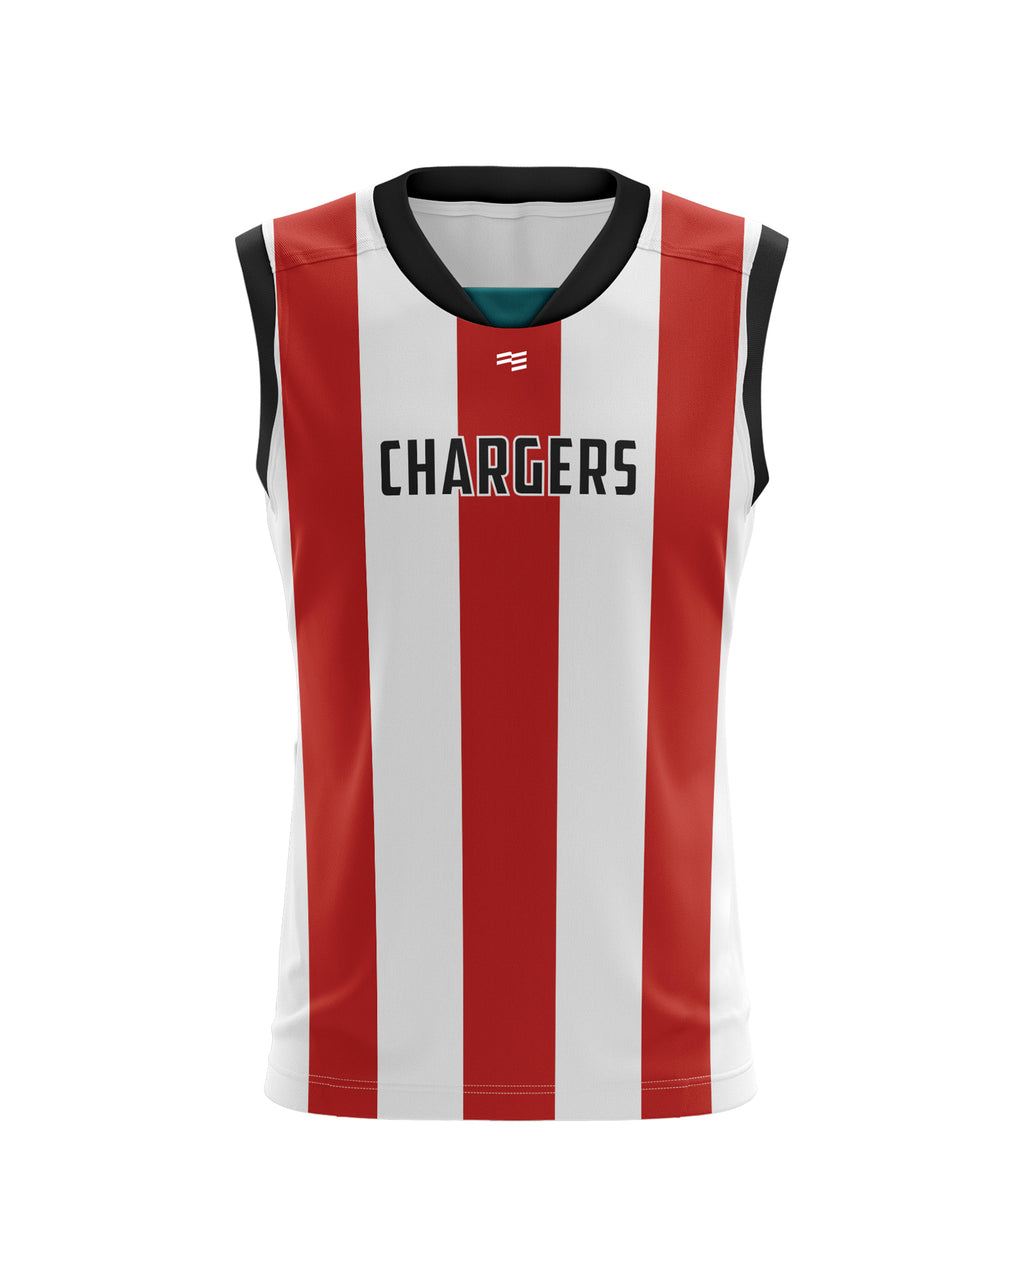 Chargers Aussie Rules Guernsey - Mens